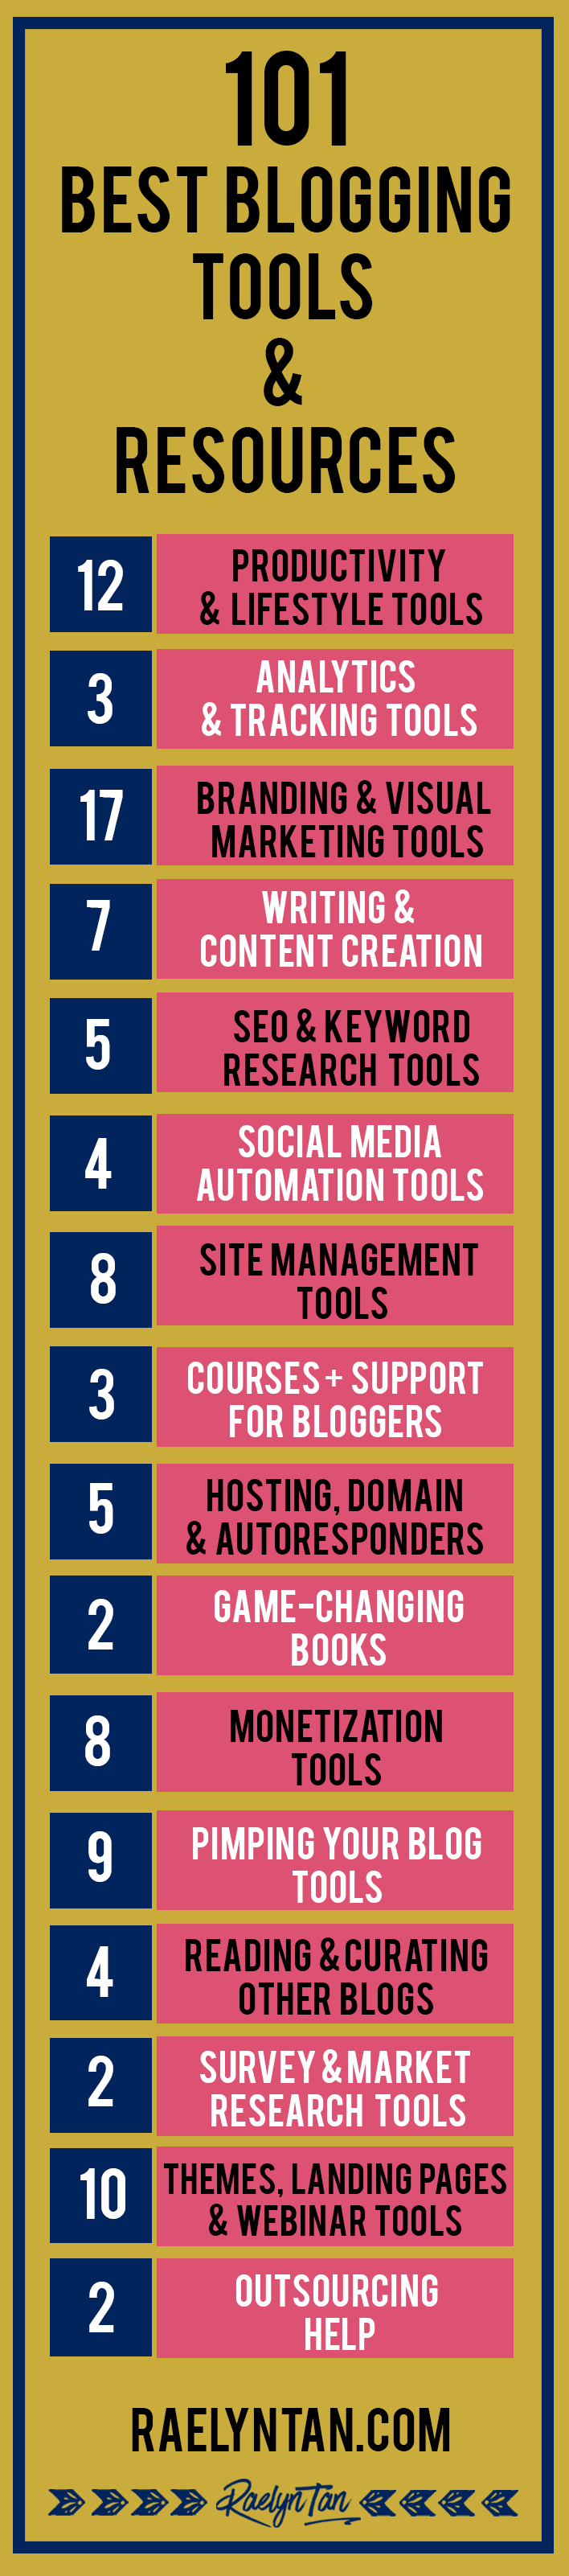 101 Best Blogging Tools & Resources (2019 Edition)